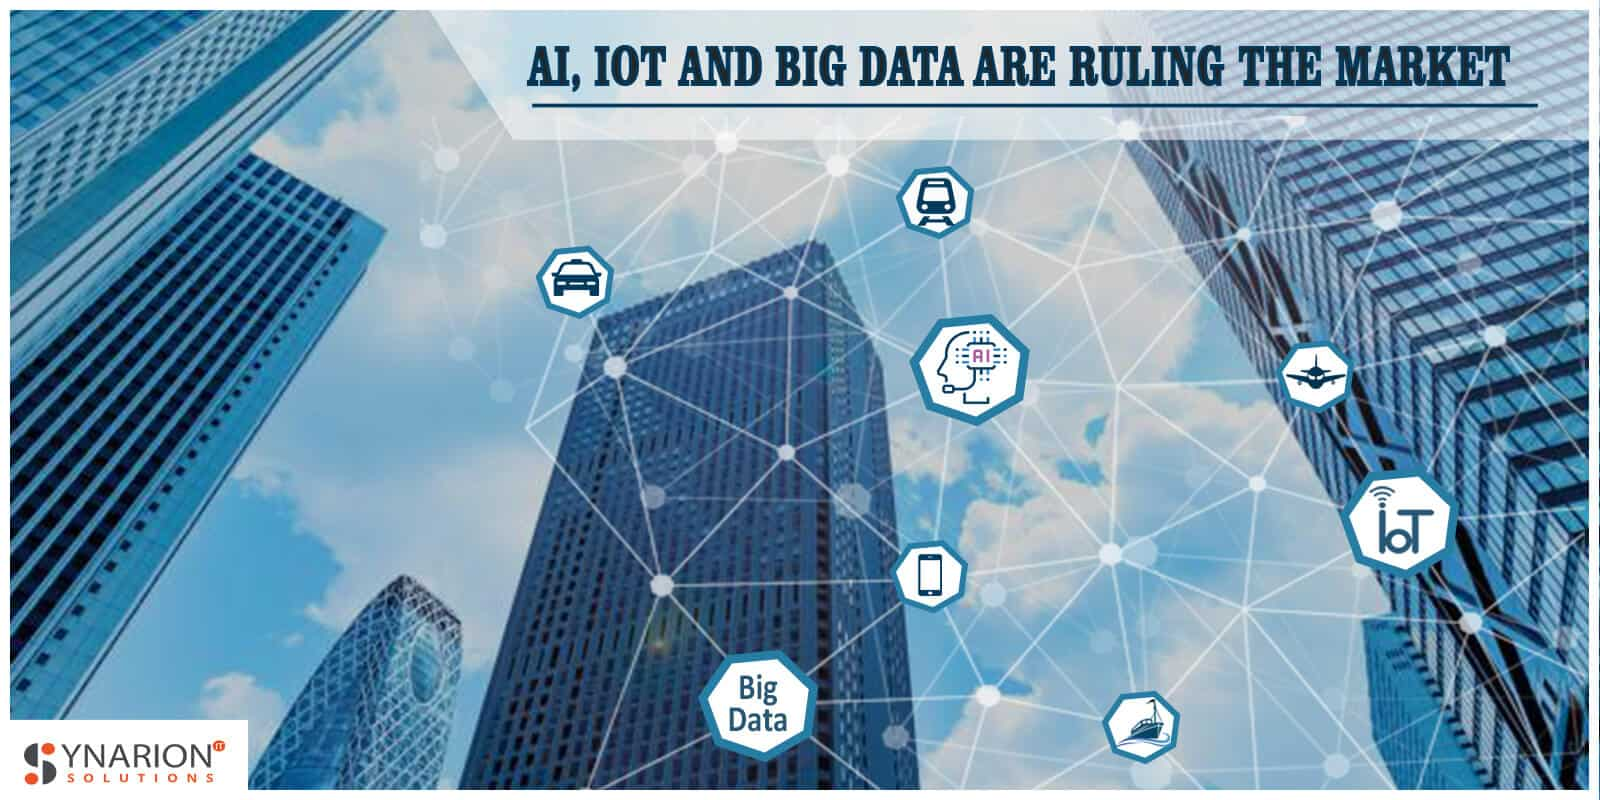 AI, IoT, And Big Data Are Ruling The Market